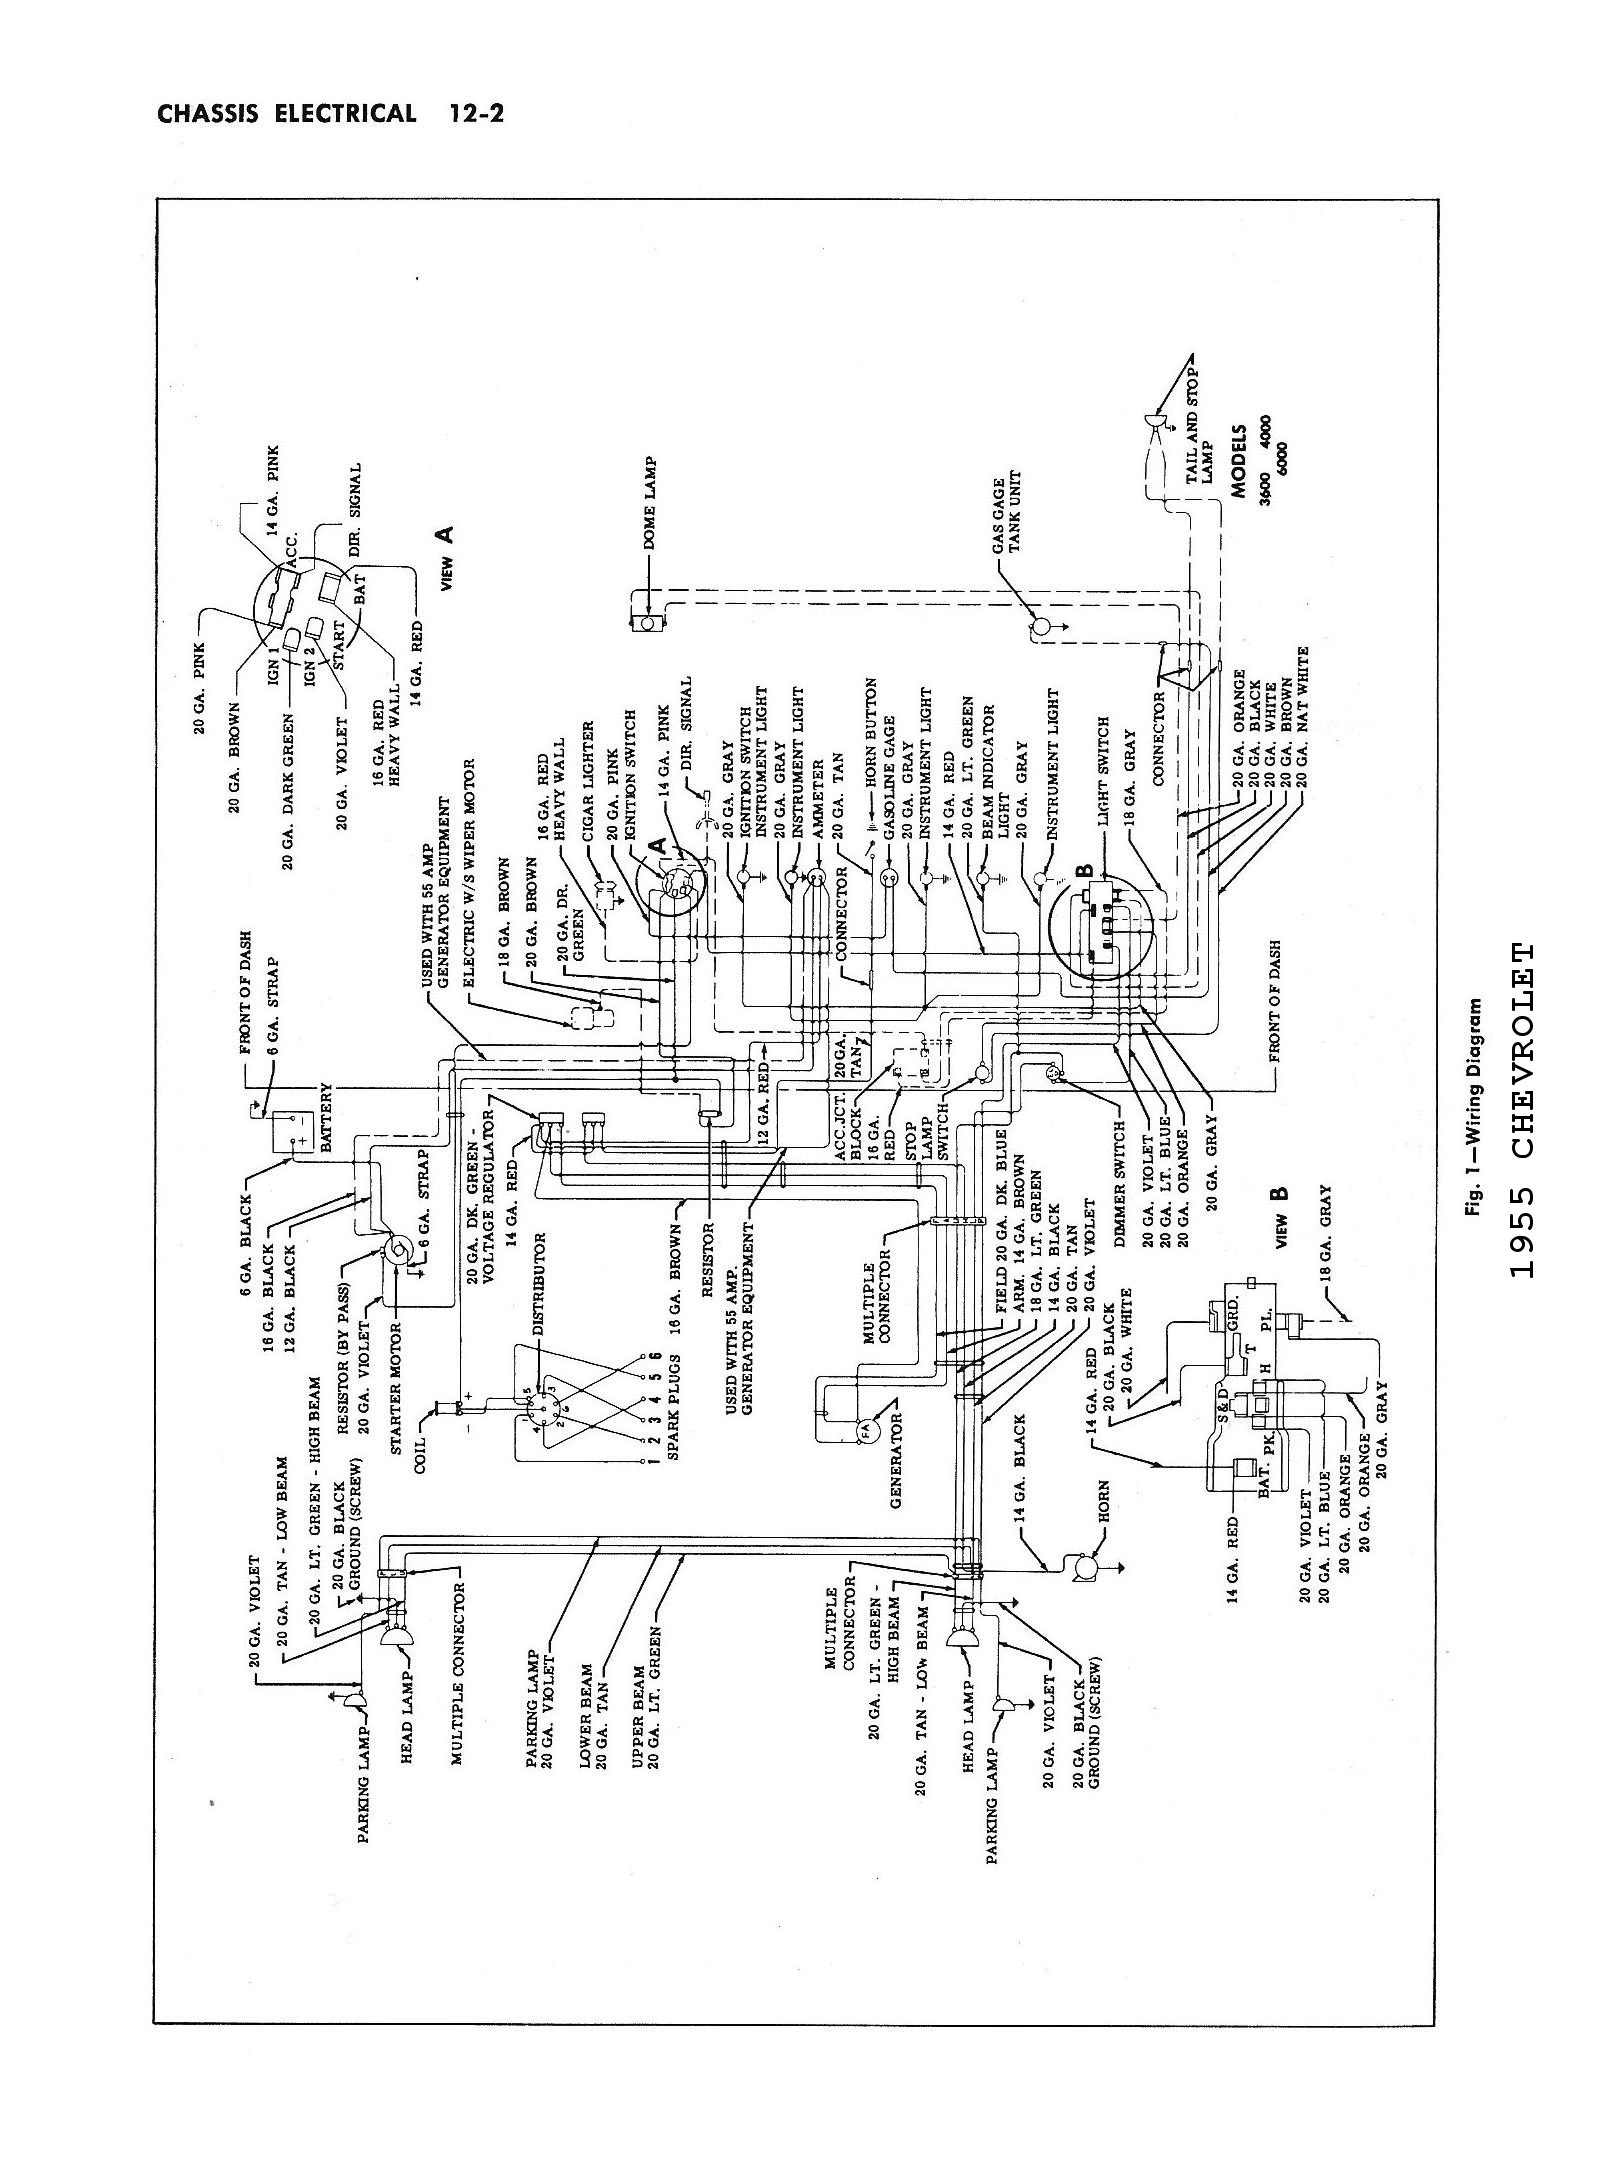 1933 Chevrolet Wiring Diagram Library Razor Sport Mod Electric Scooter 1955 Car Diagrams Passenger Truck